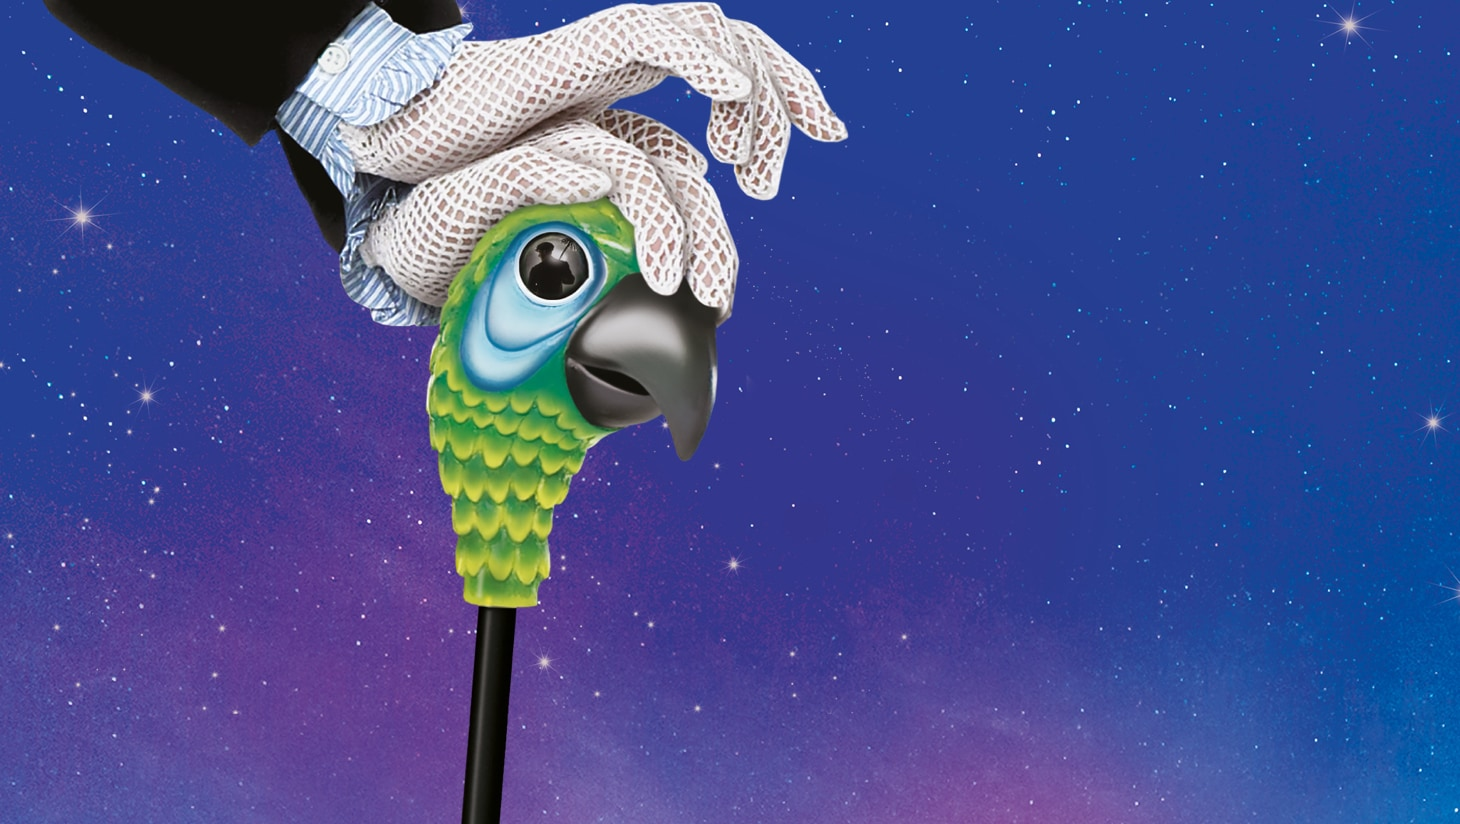 Mary Poppins parrot handled umbrella against a backdrop of the night sky